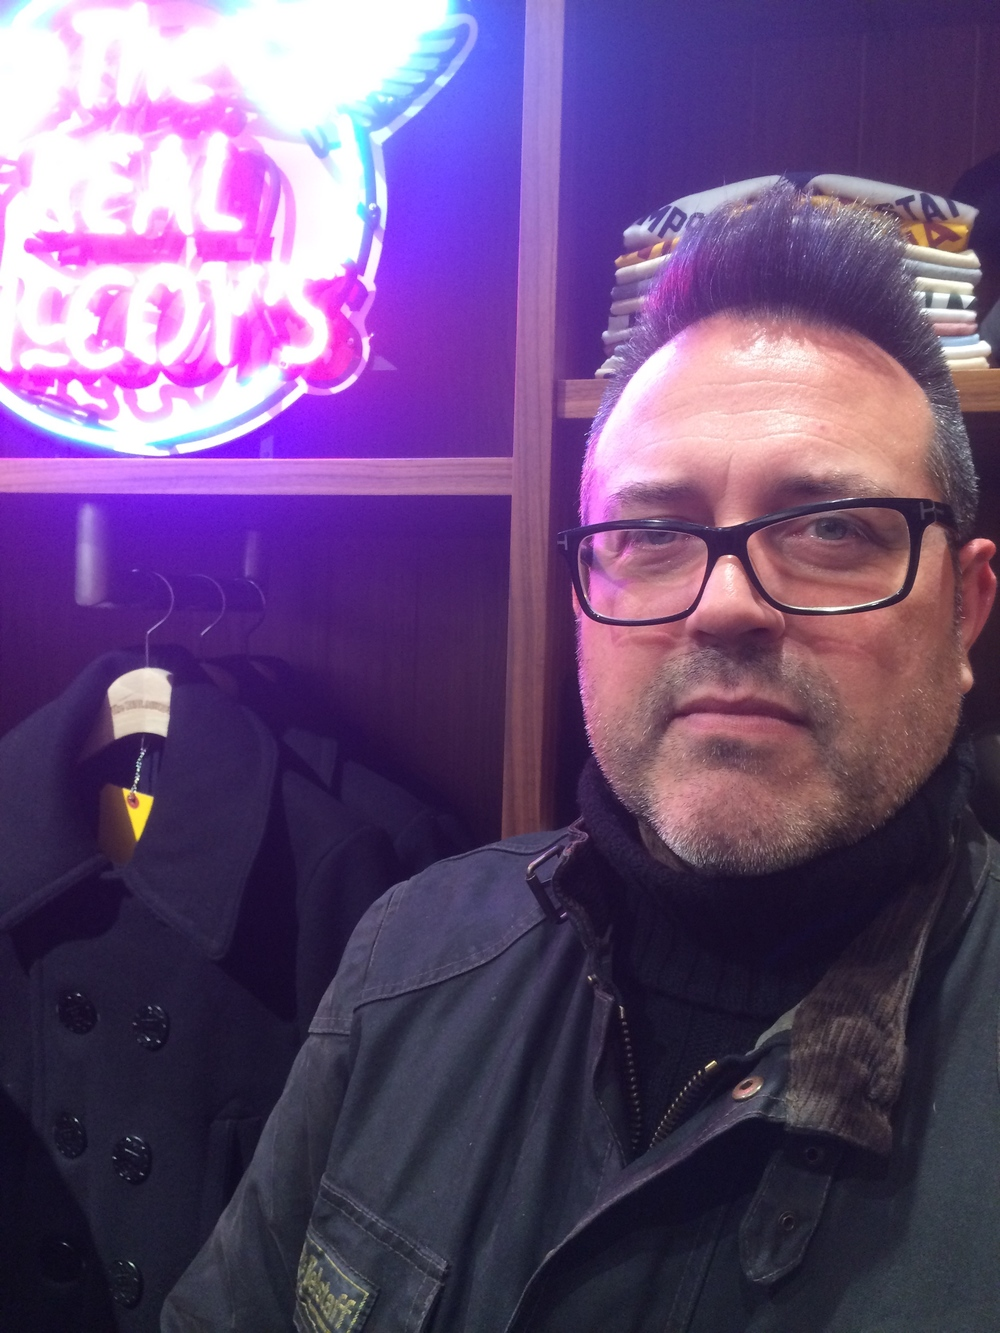 The Real McCoy's Peacoat in the background is going straight onto The Obsessive's 'to buy' list..